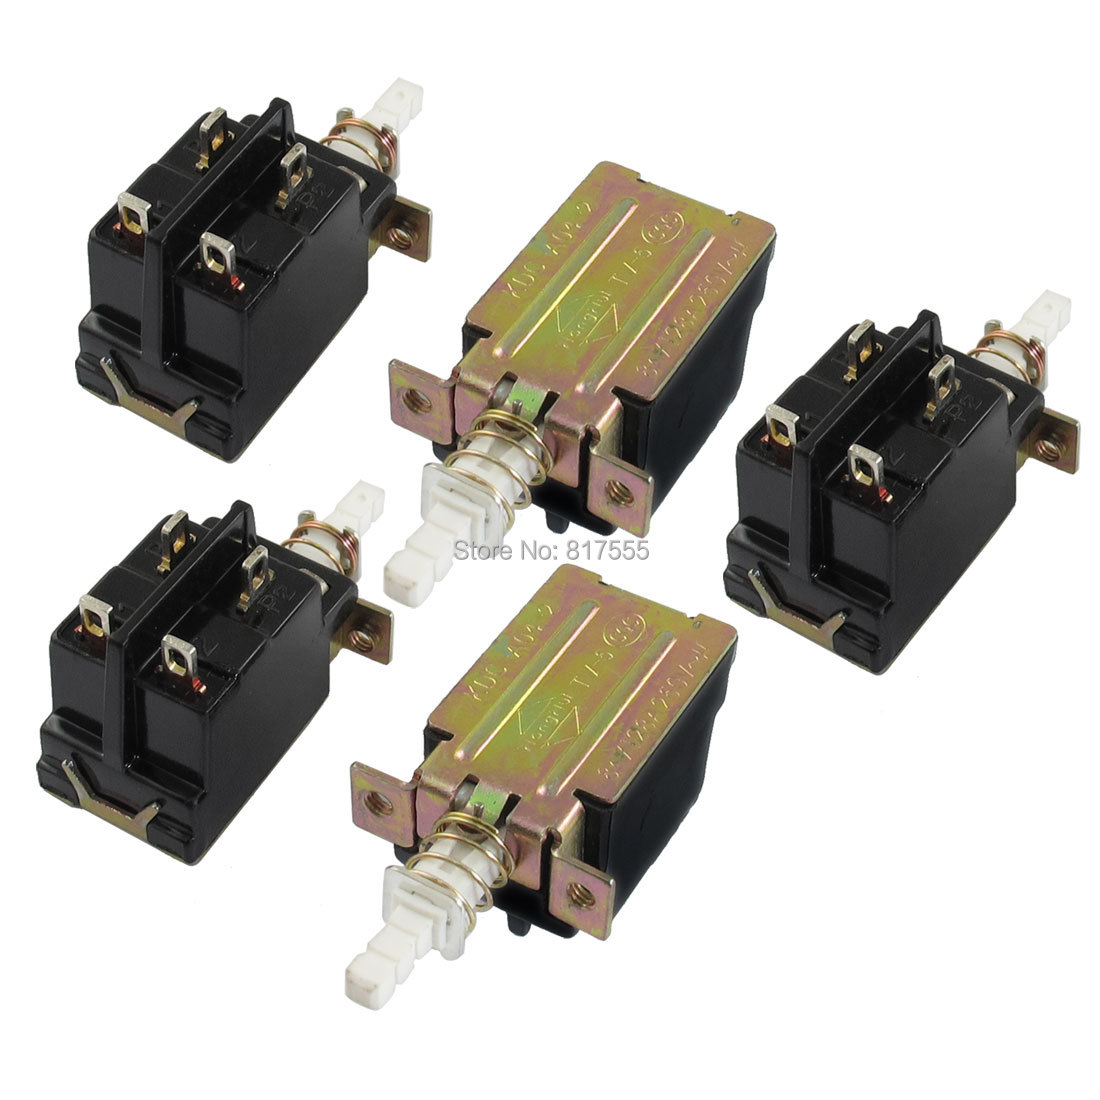 AC 250V 8 Amp 8A 4 Pin DPST Self Locking Solder PCB Pushbutton Power Switch 5 Pcs/lot Discount 50 Size 47 x 26 x 25mm (L*W*T)(China (Mainland))